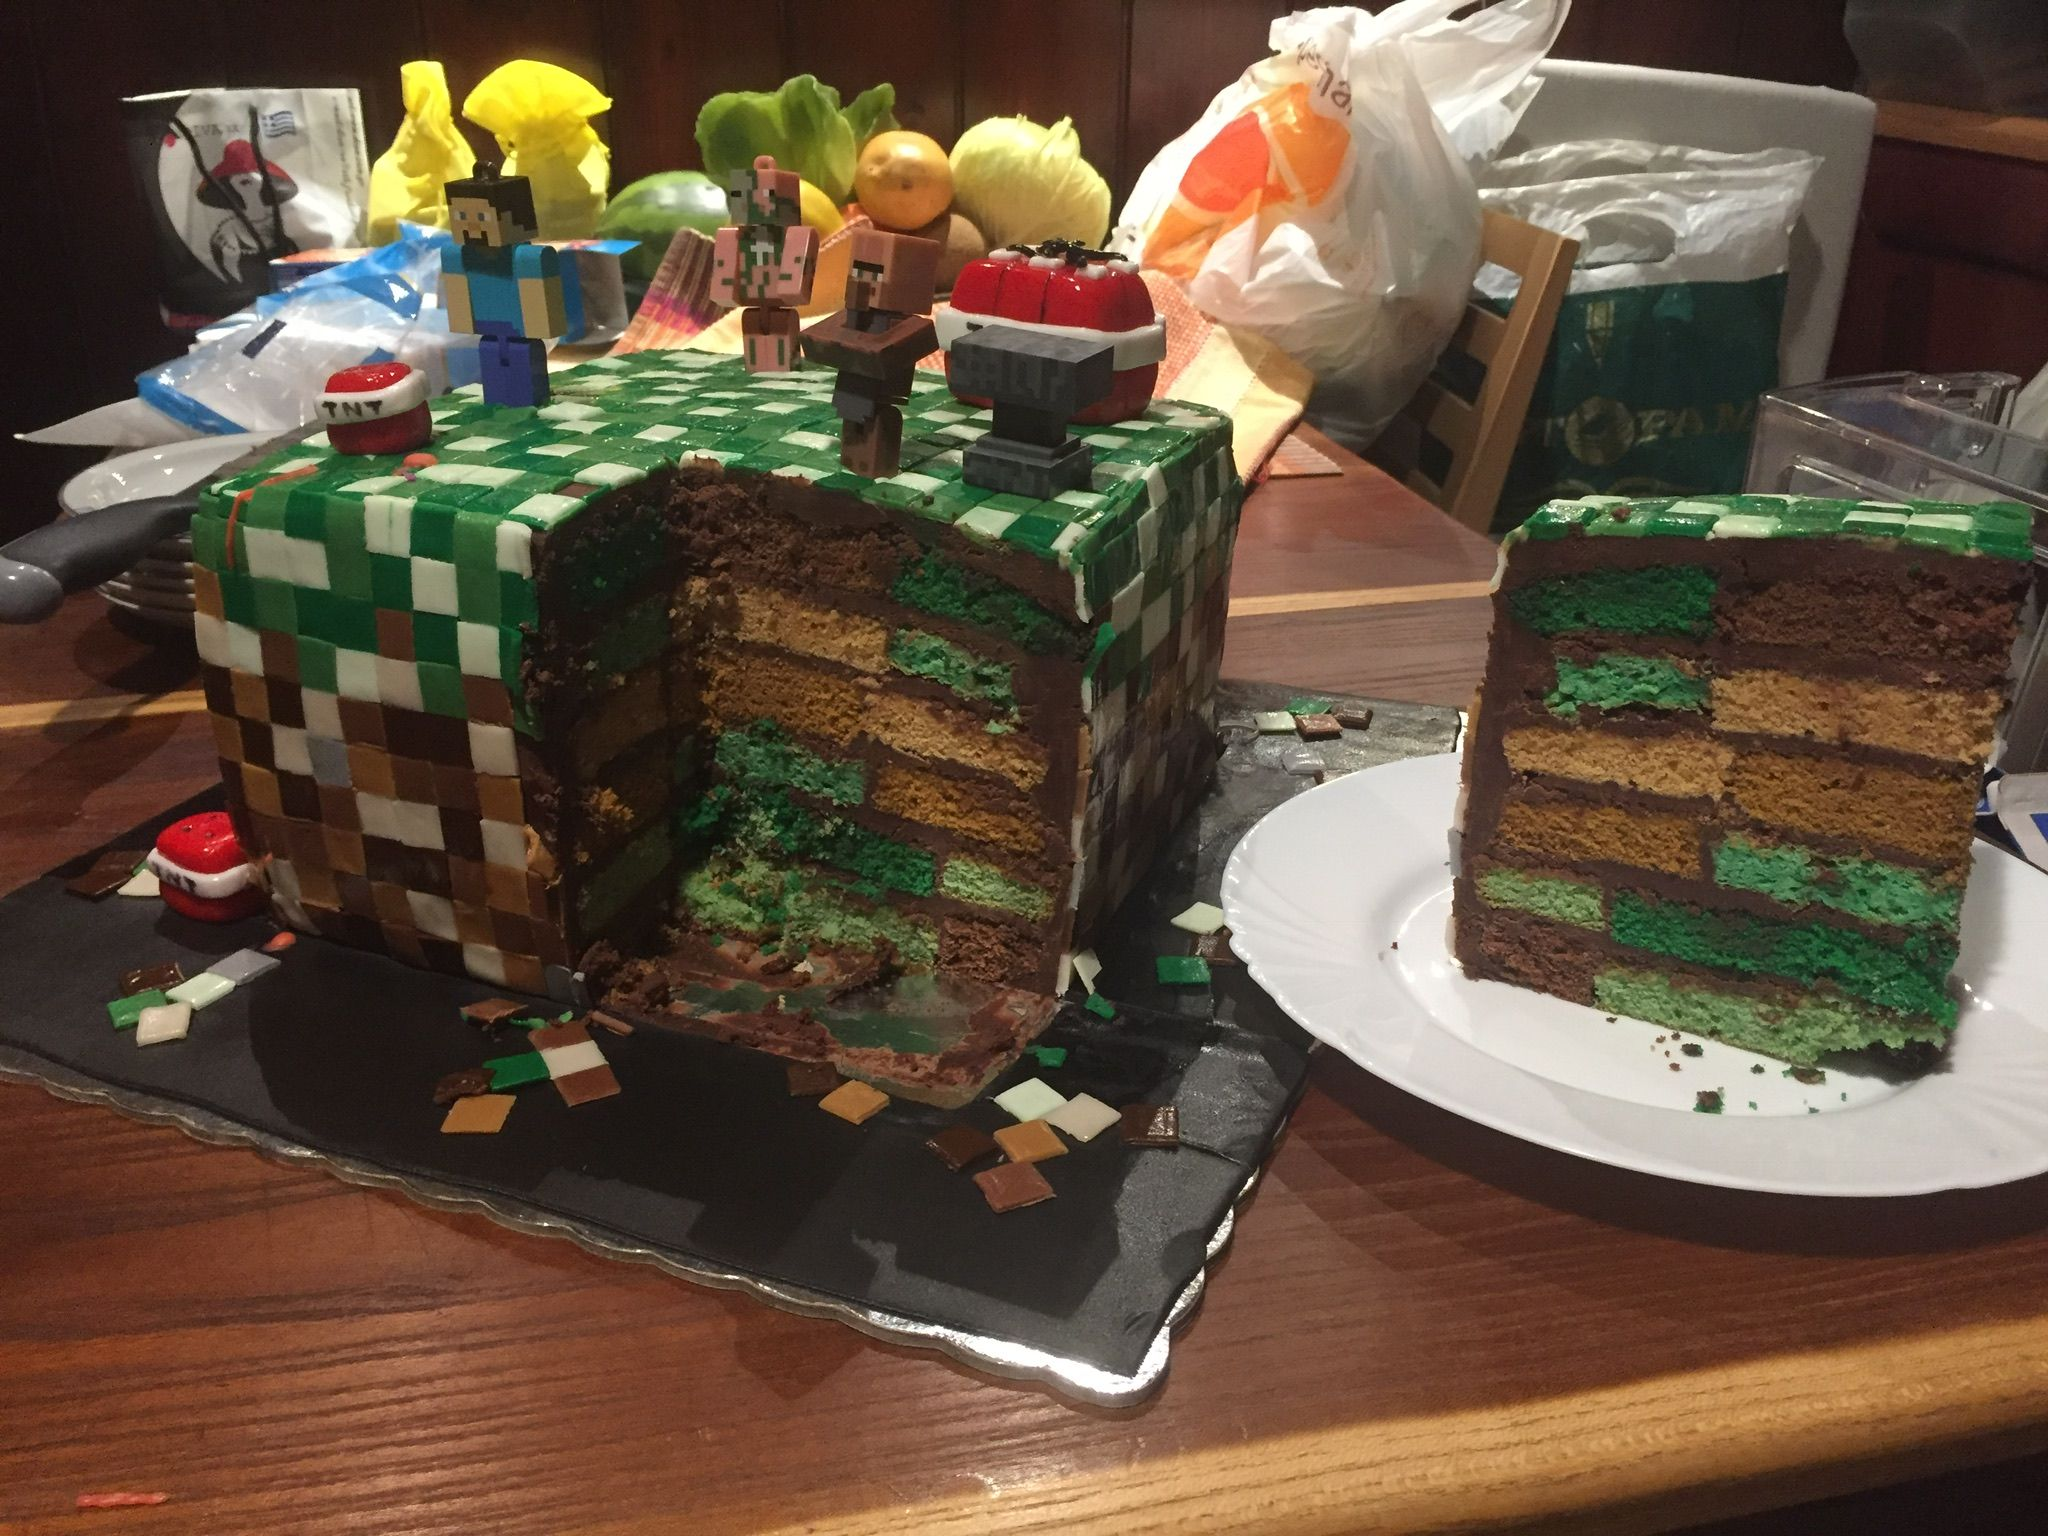 Pin By Dimitra Kai On Minecraft Birthday Cake Pinterest